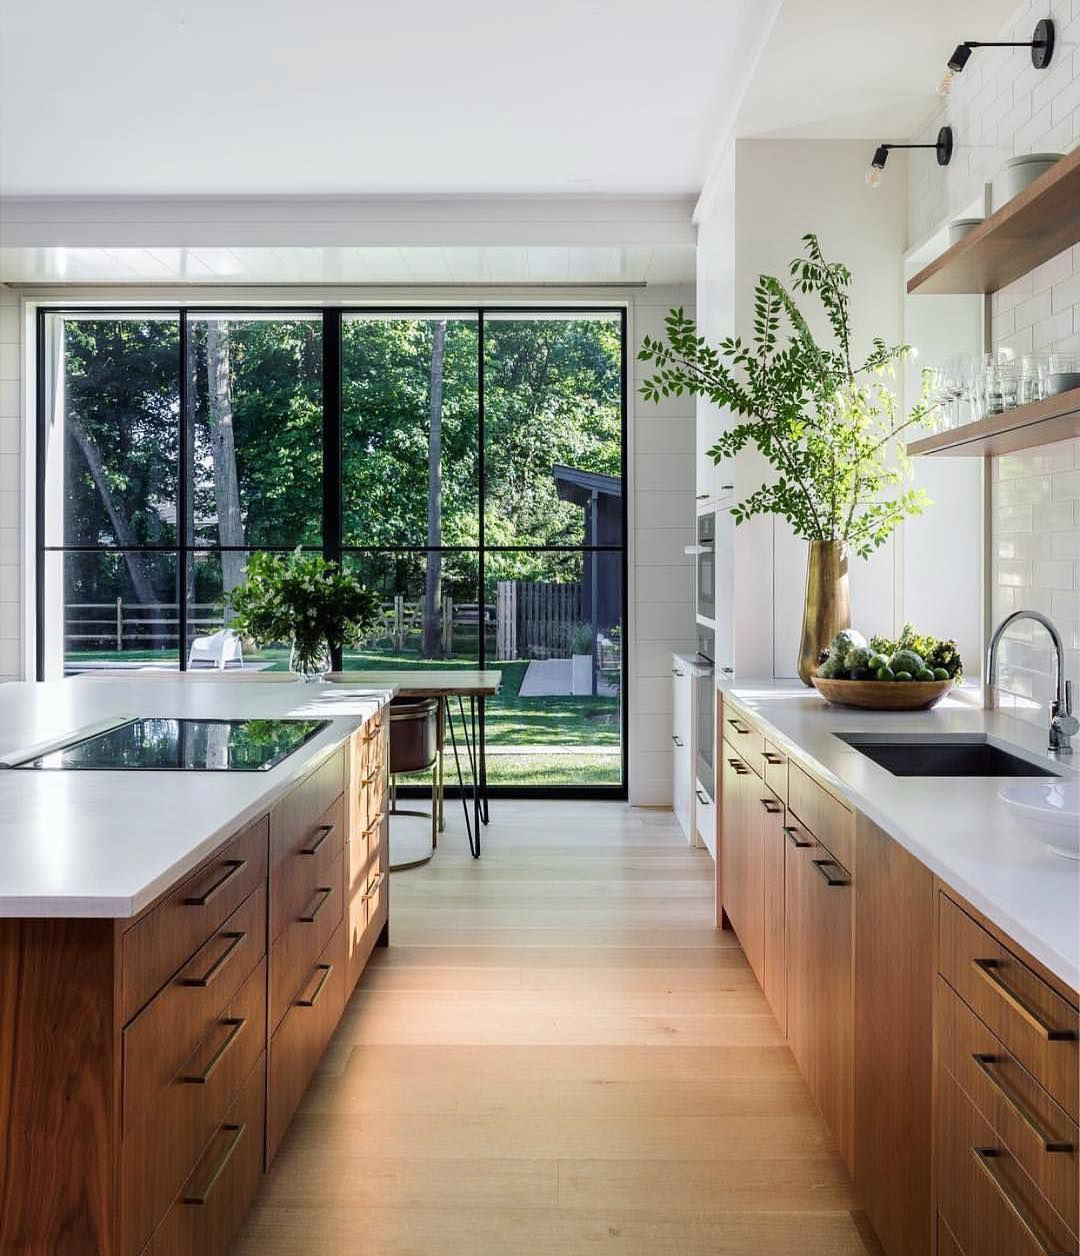 """NORDIK SPACE on Instagram """"A stunning kitchen with a beautiful ..."""